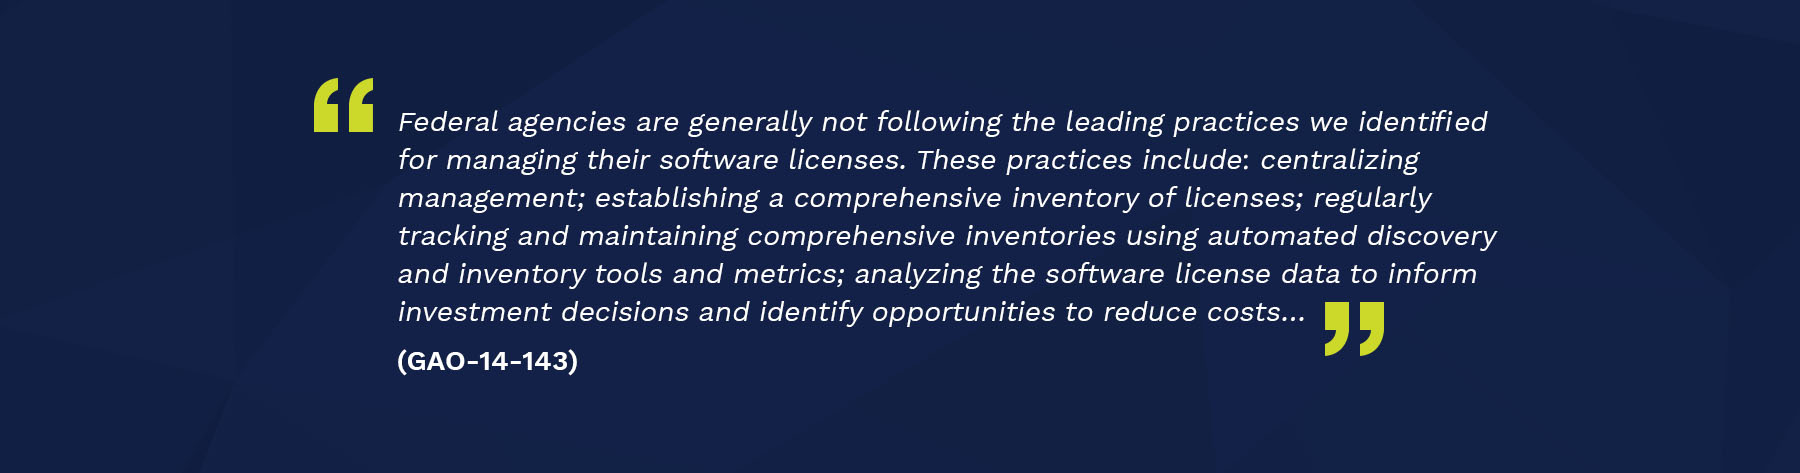 Blue background with quote. text reads: Federal agencies are generally not following the leading practices we identified for managing their software licenses.